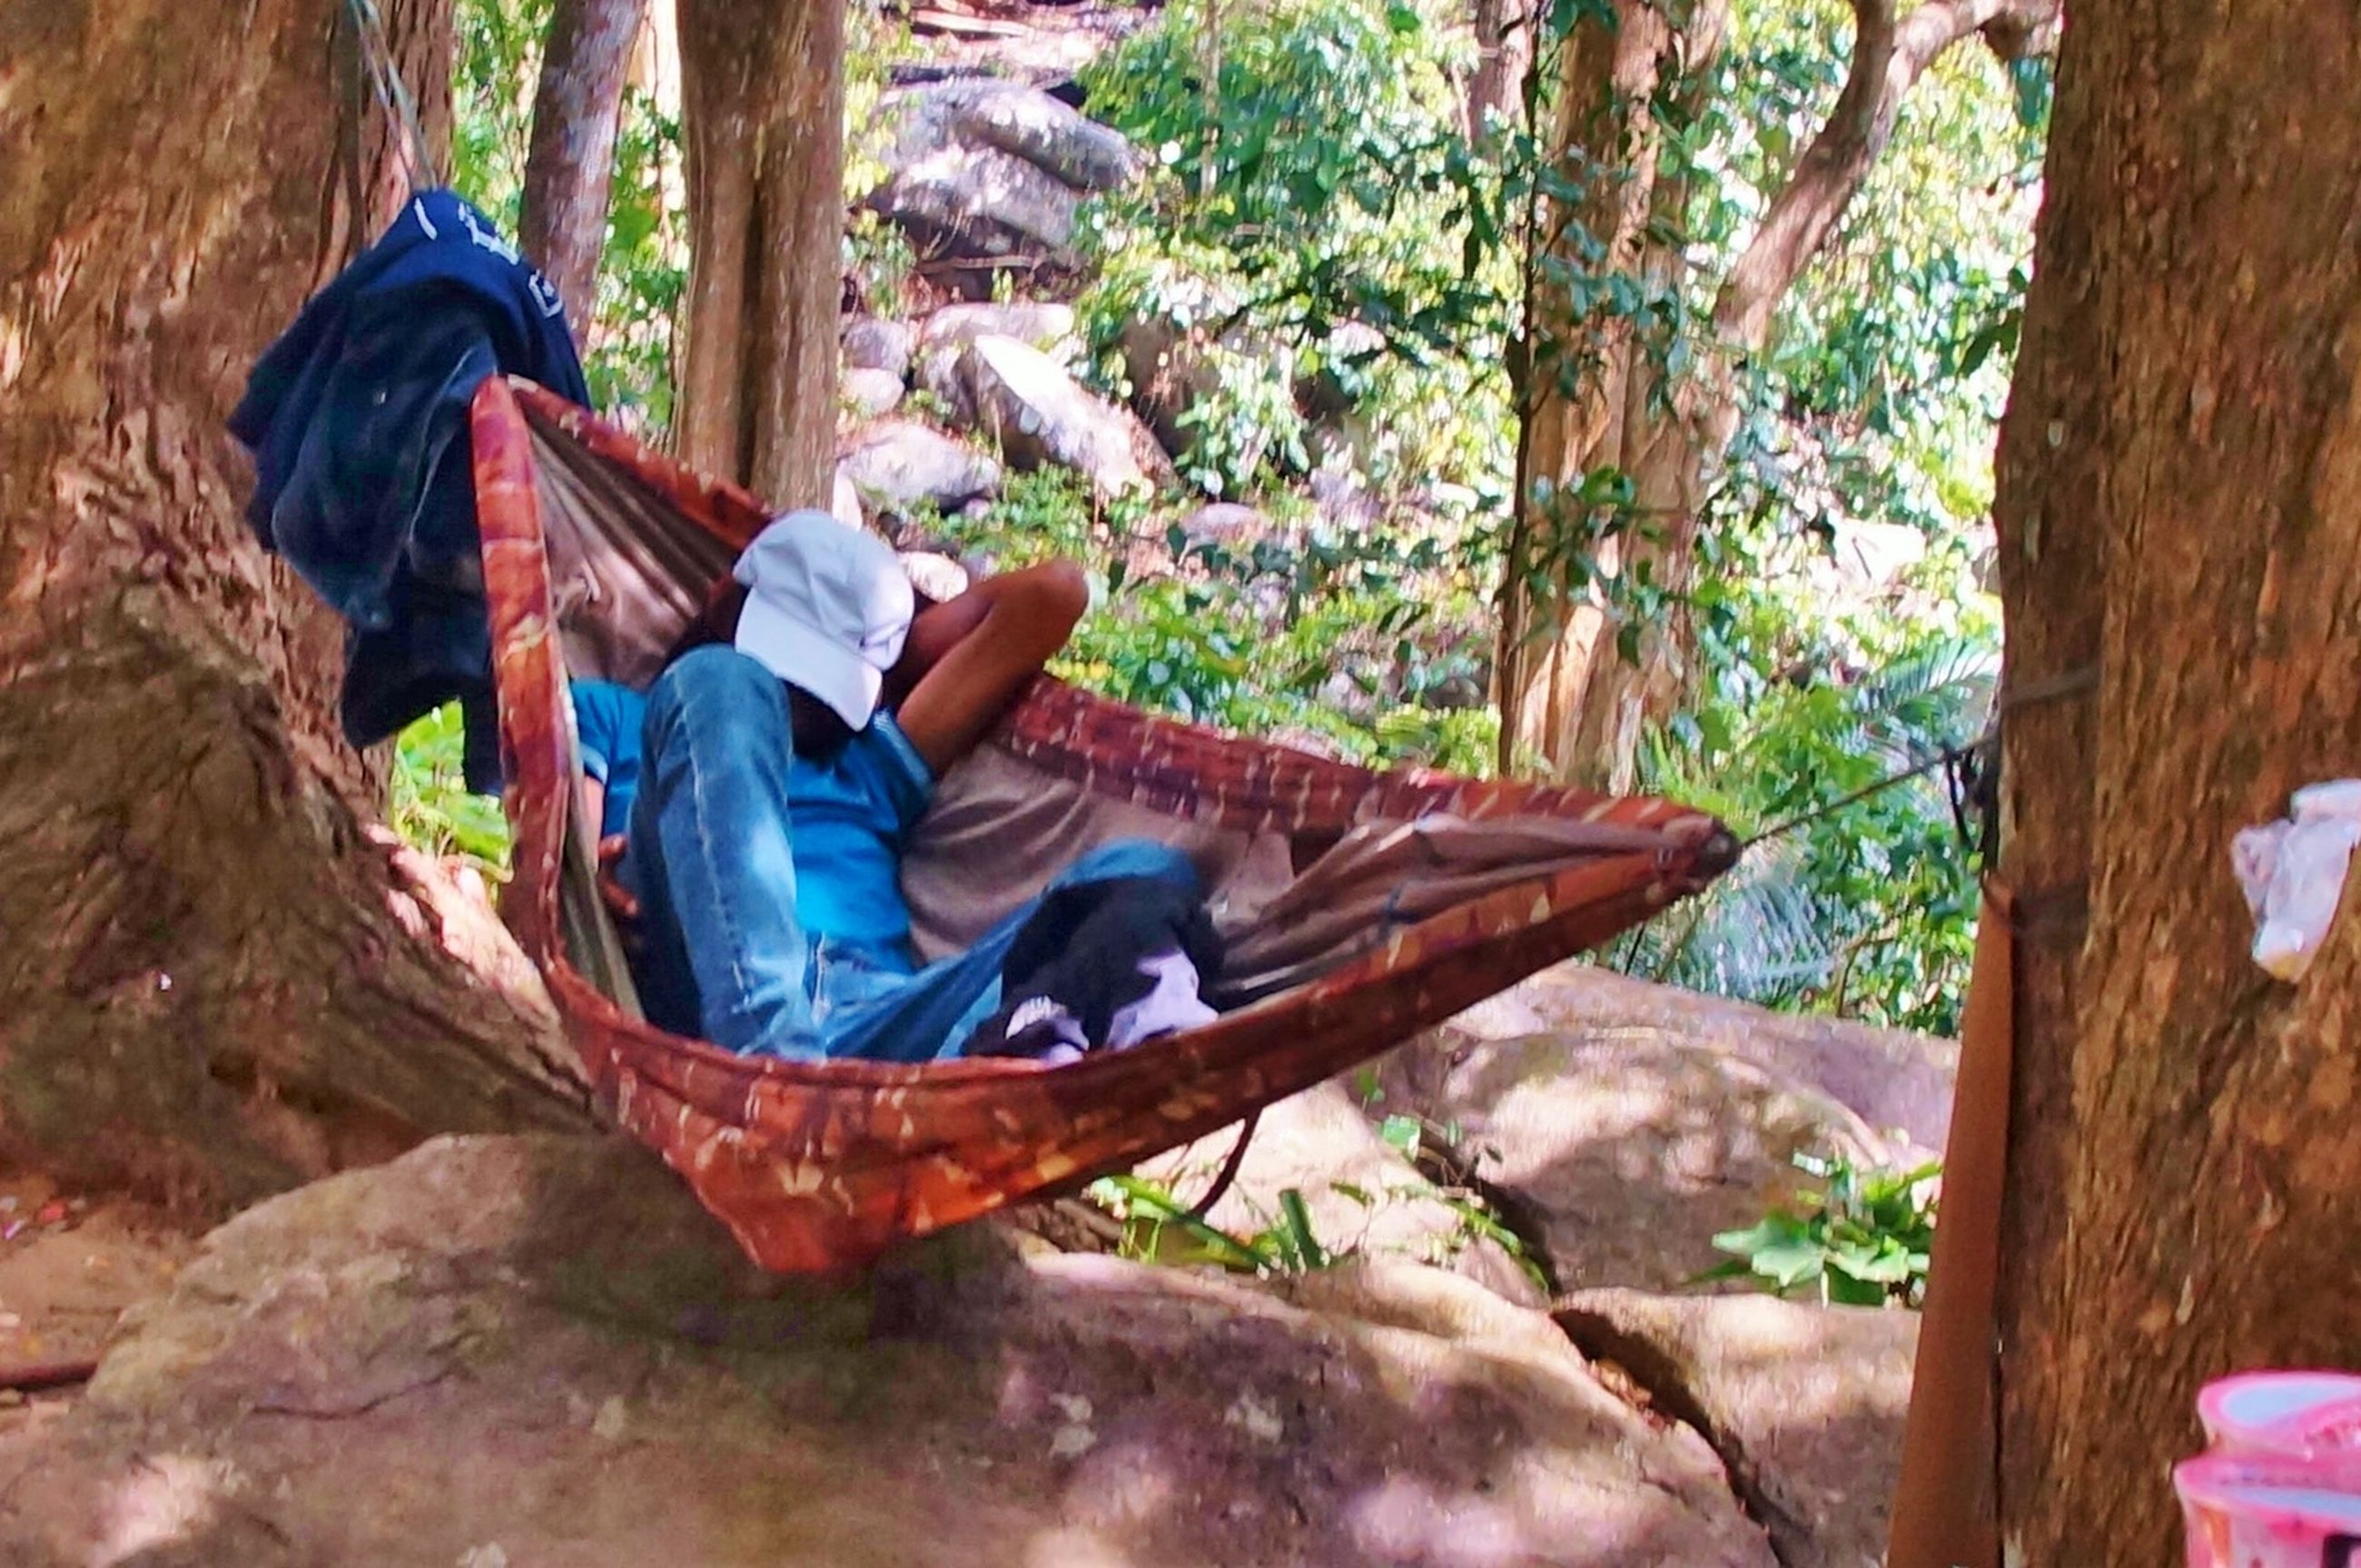 LOW SECTION OF MAN RELAXING ON HAMMOCK